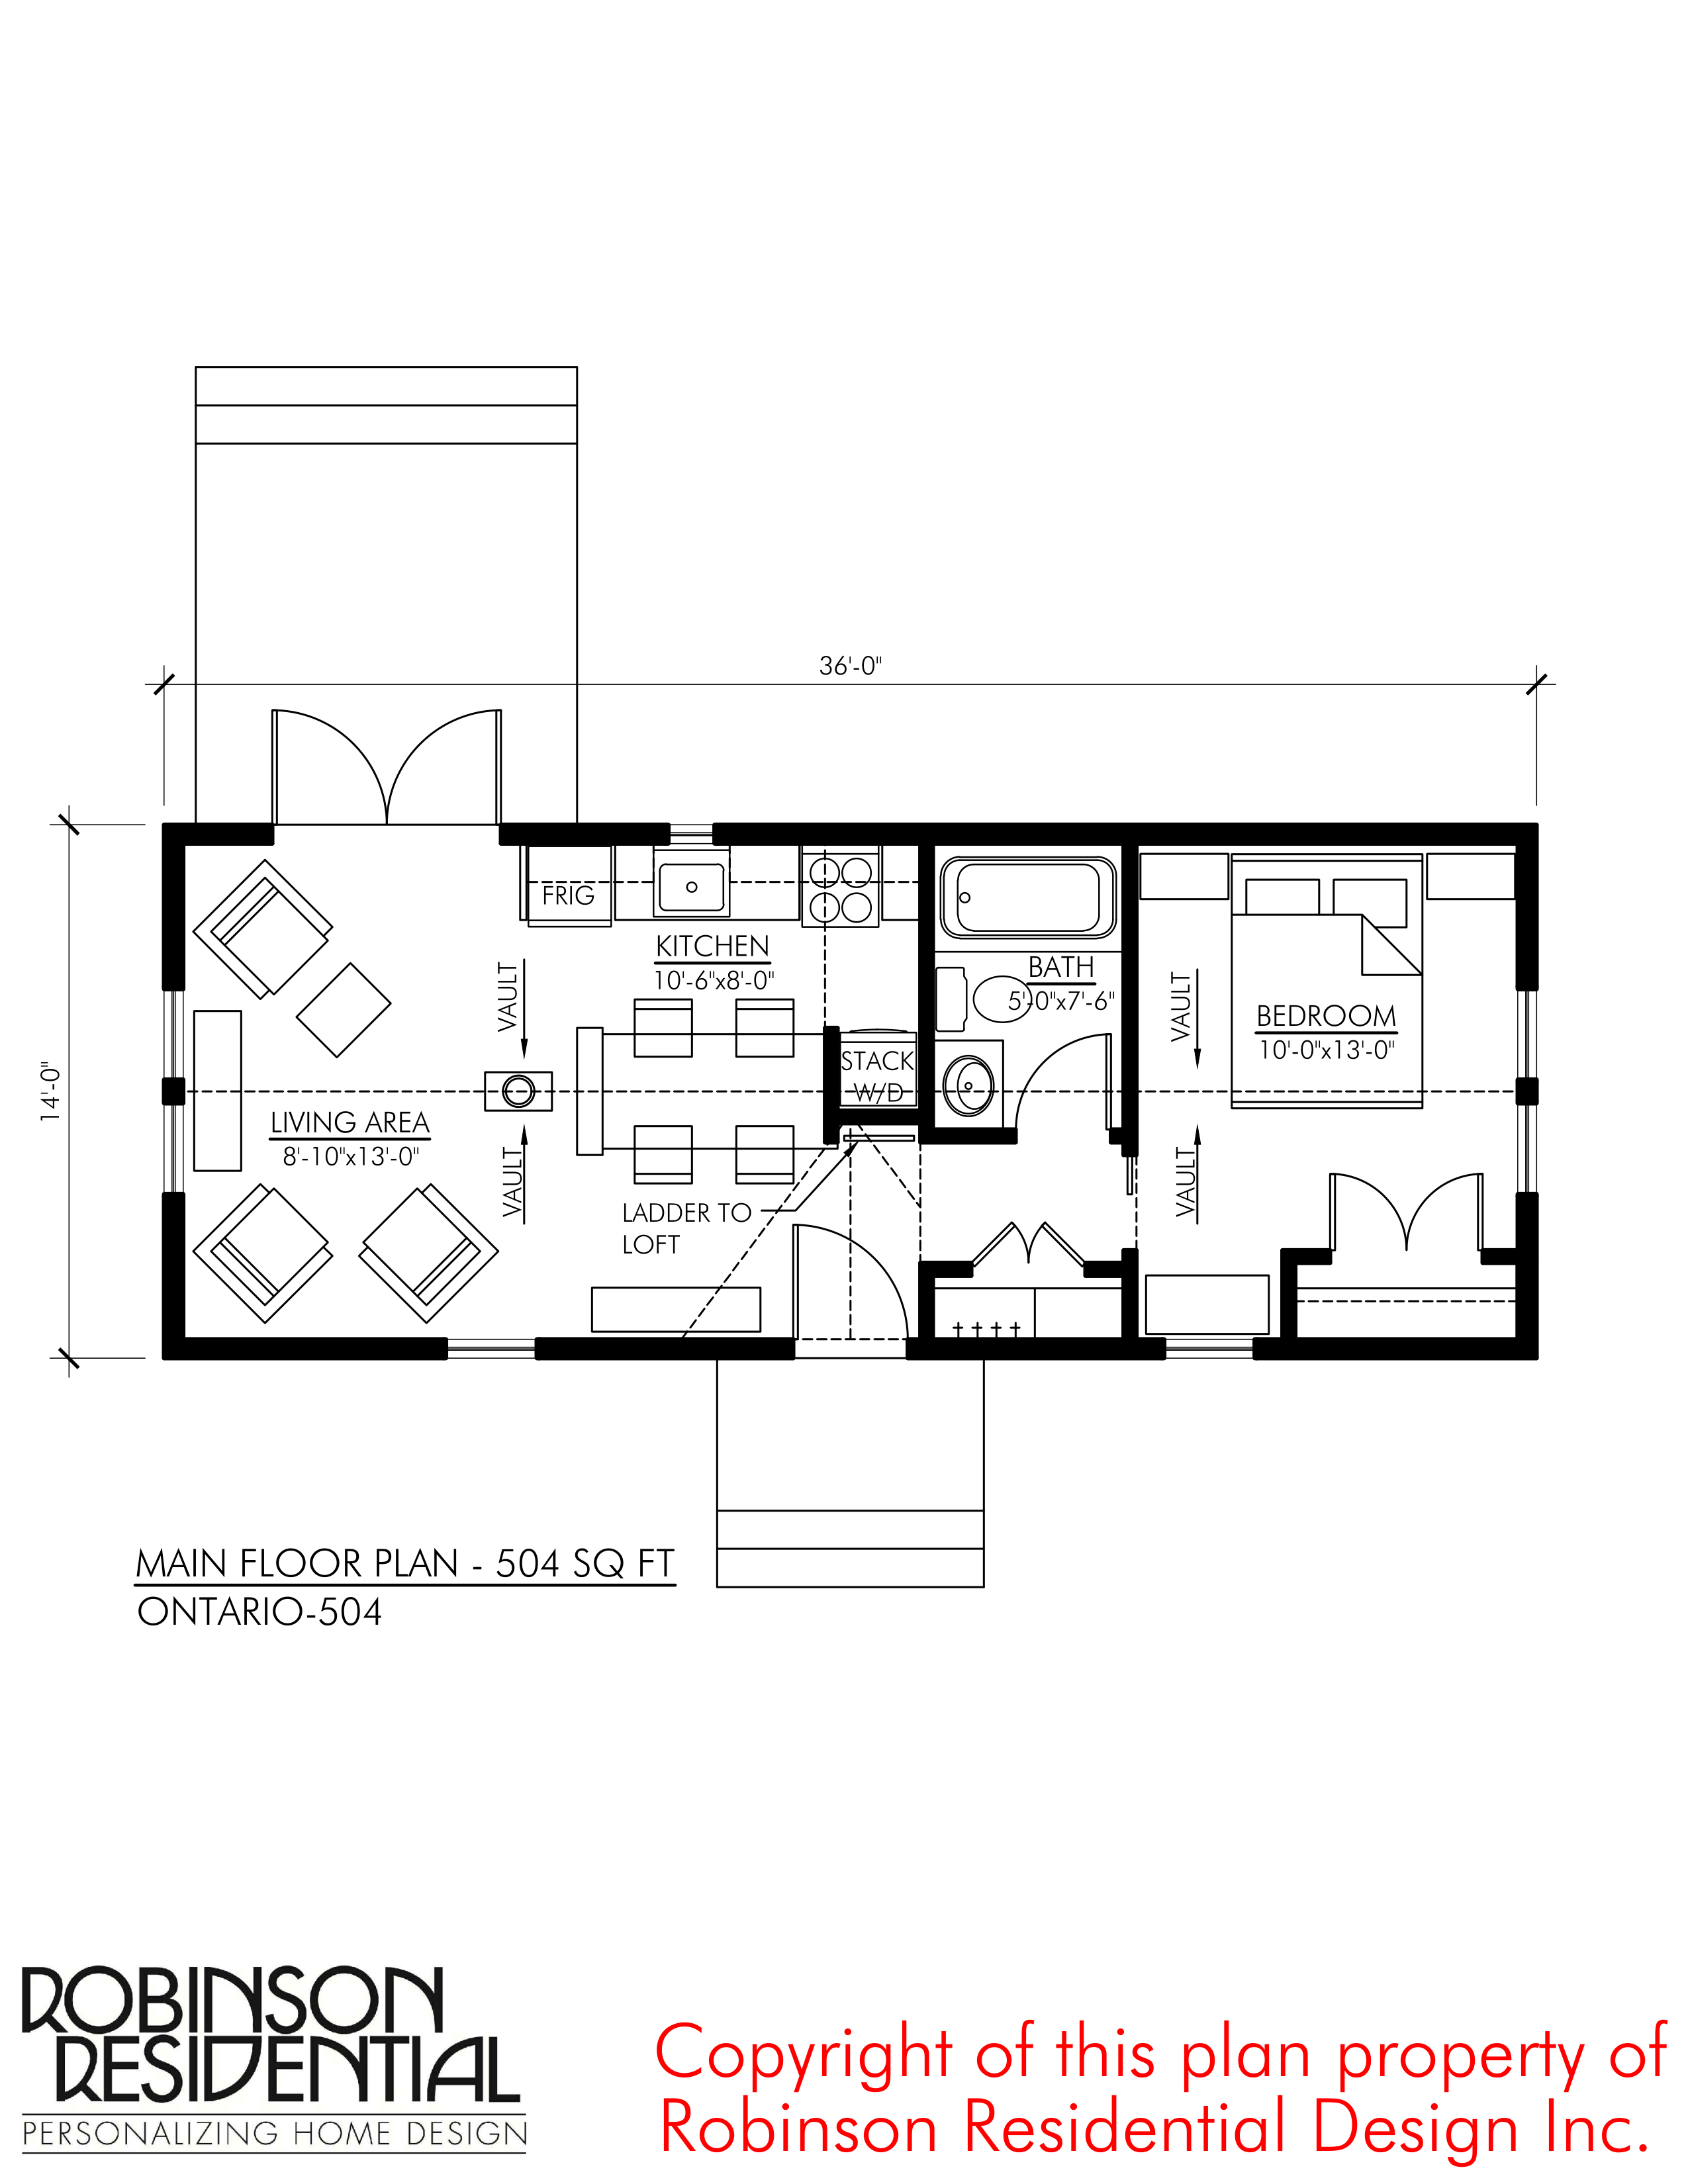 Tiny house plans ontario escortsea for Canadian house plans 2017